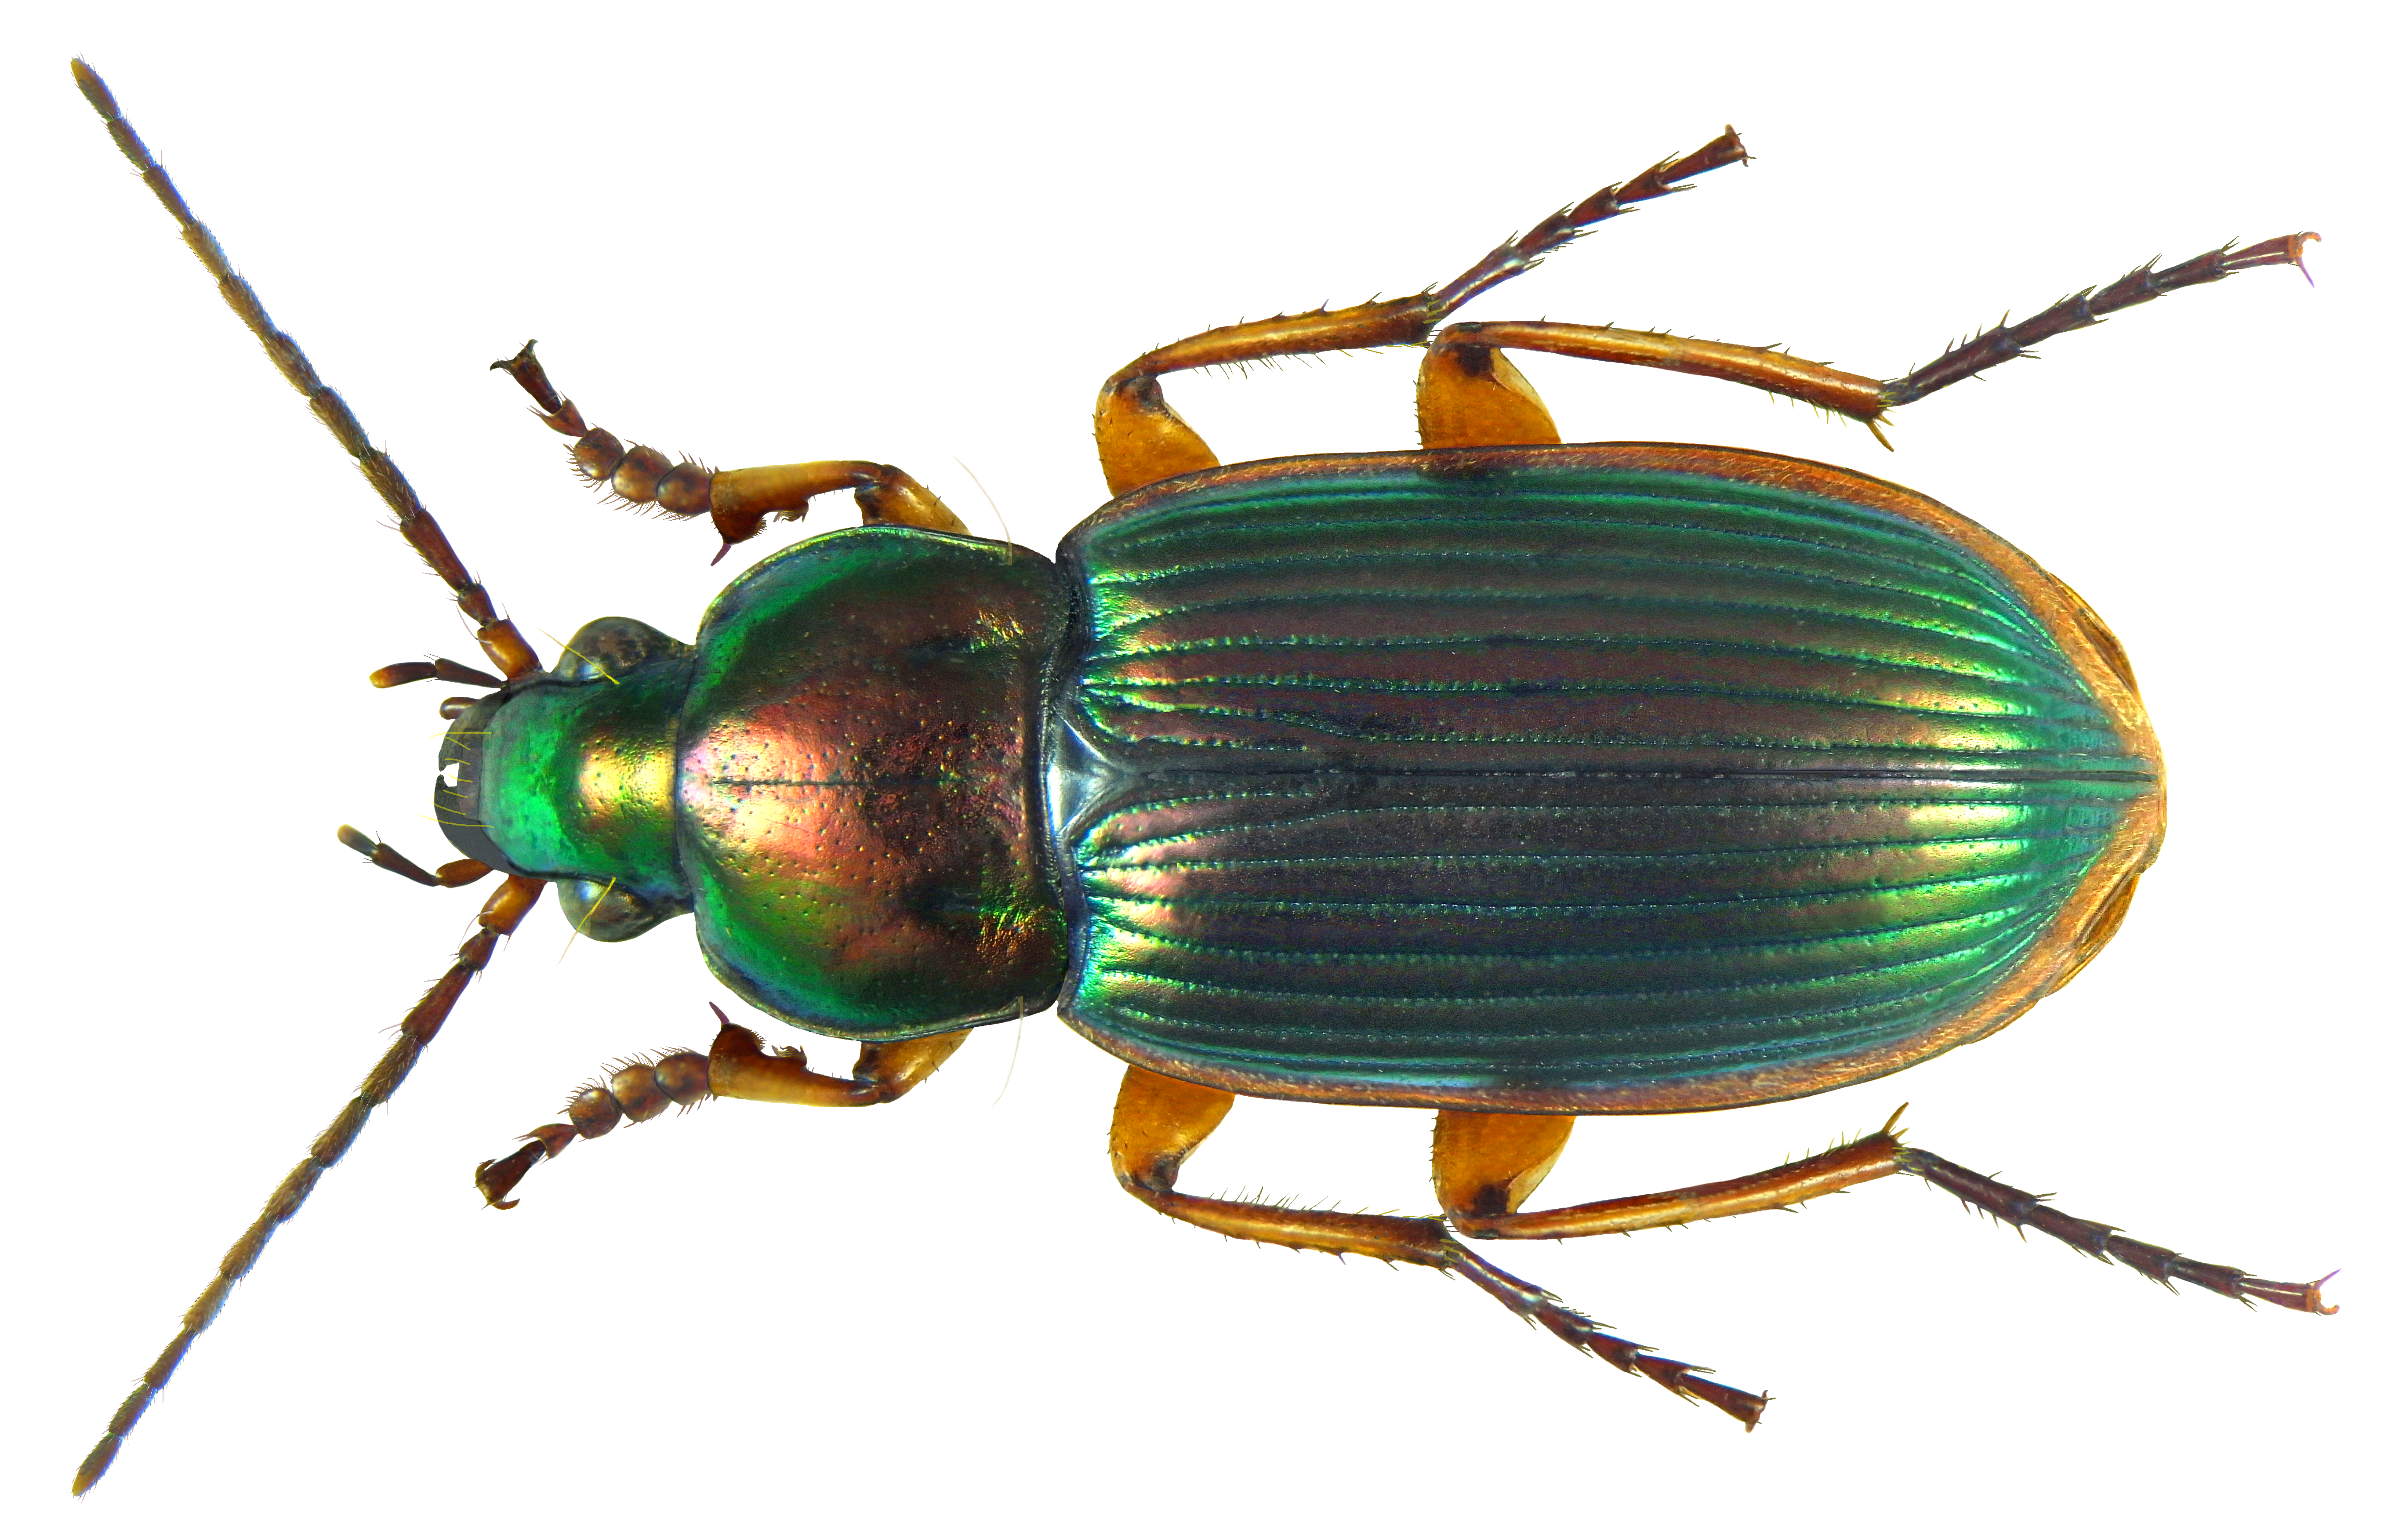 File:chlaenius (Amblygenius) Rufomarginatus Dejean, 1831 (8459068726).png - Insects, Transparent background PNG HD thumbnail